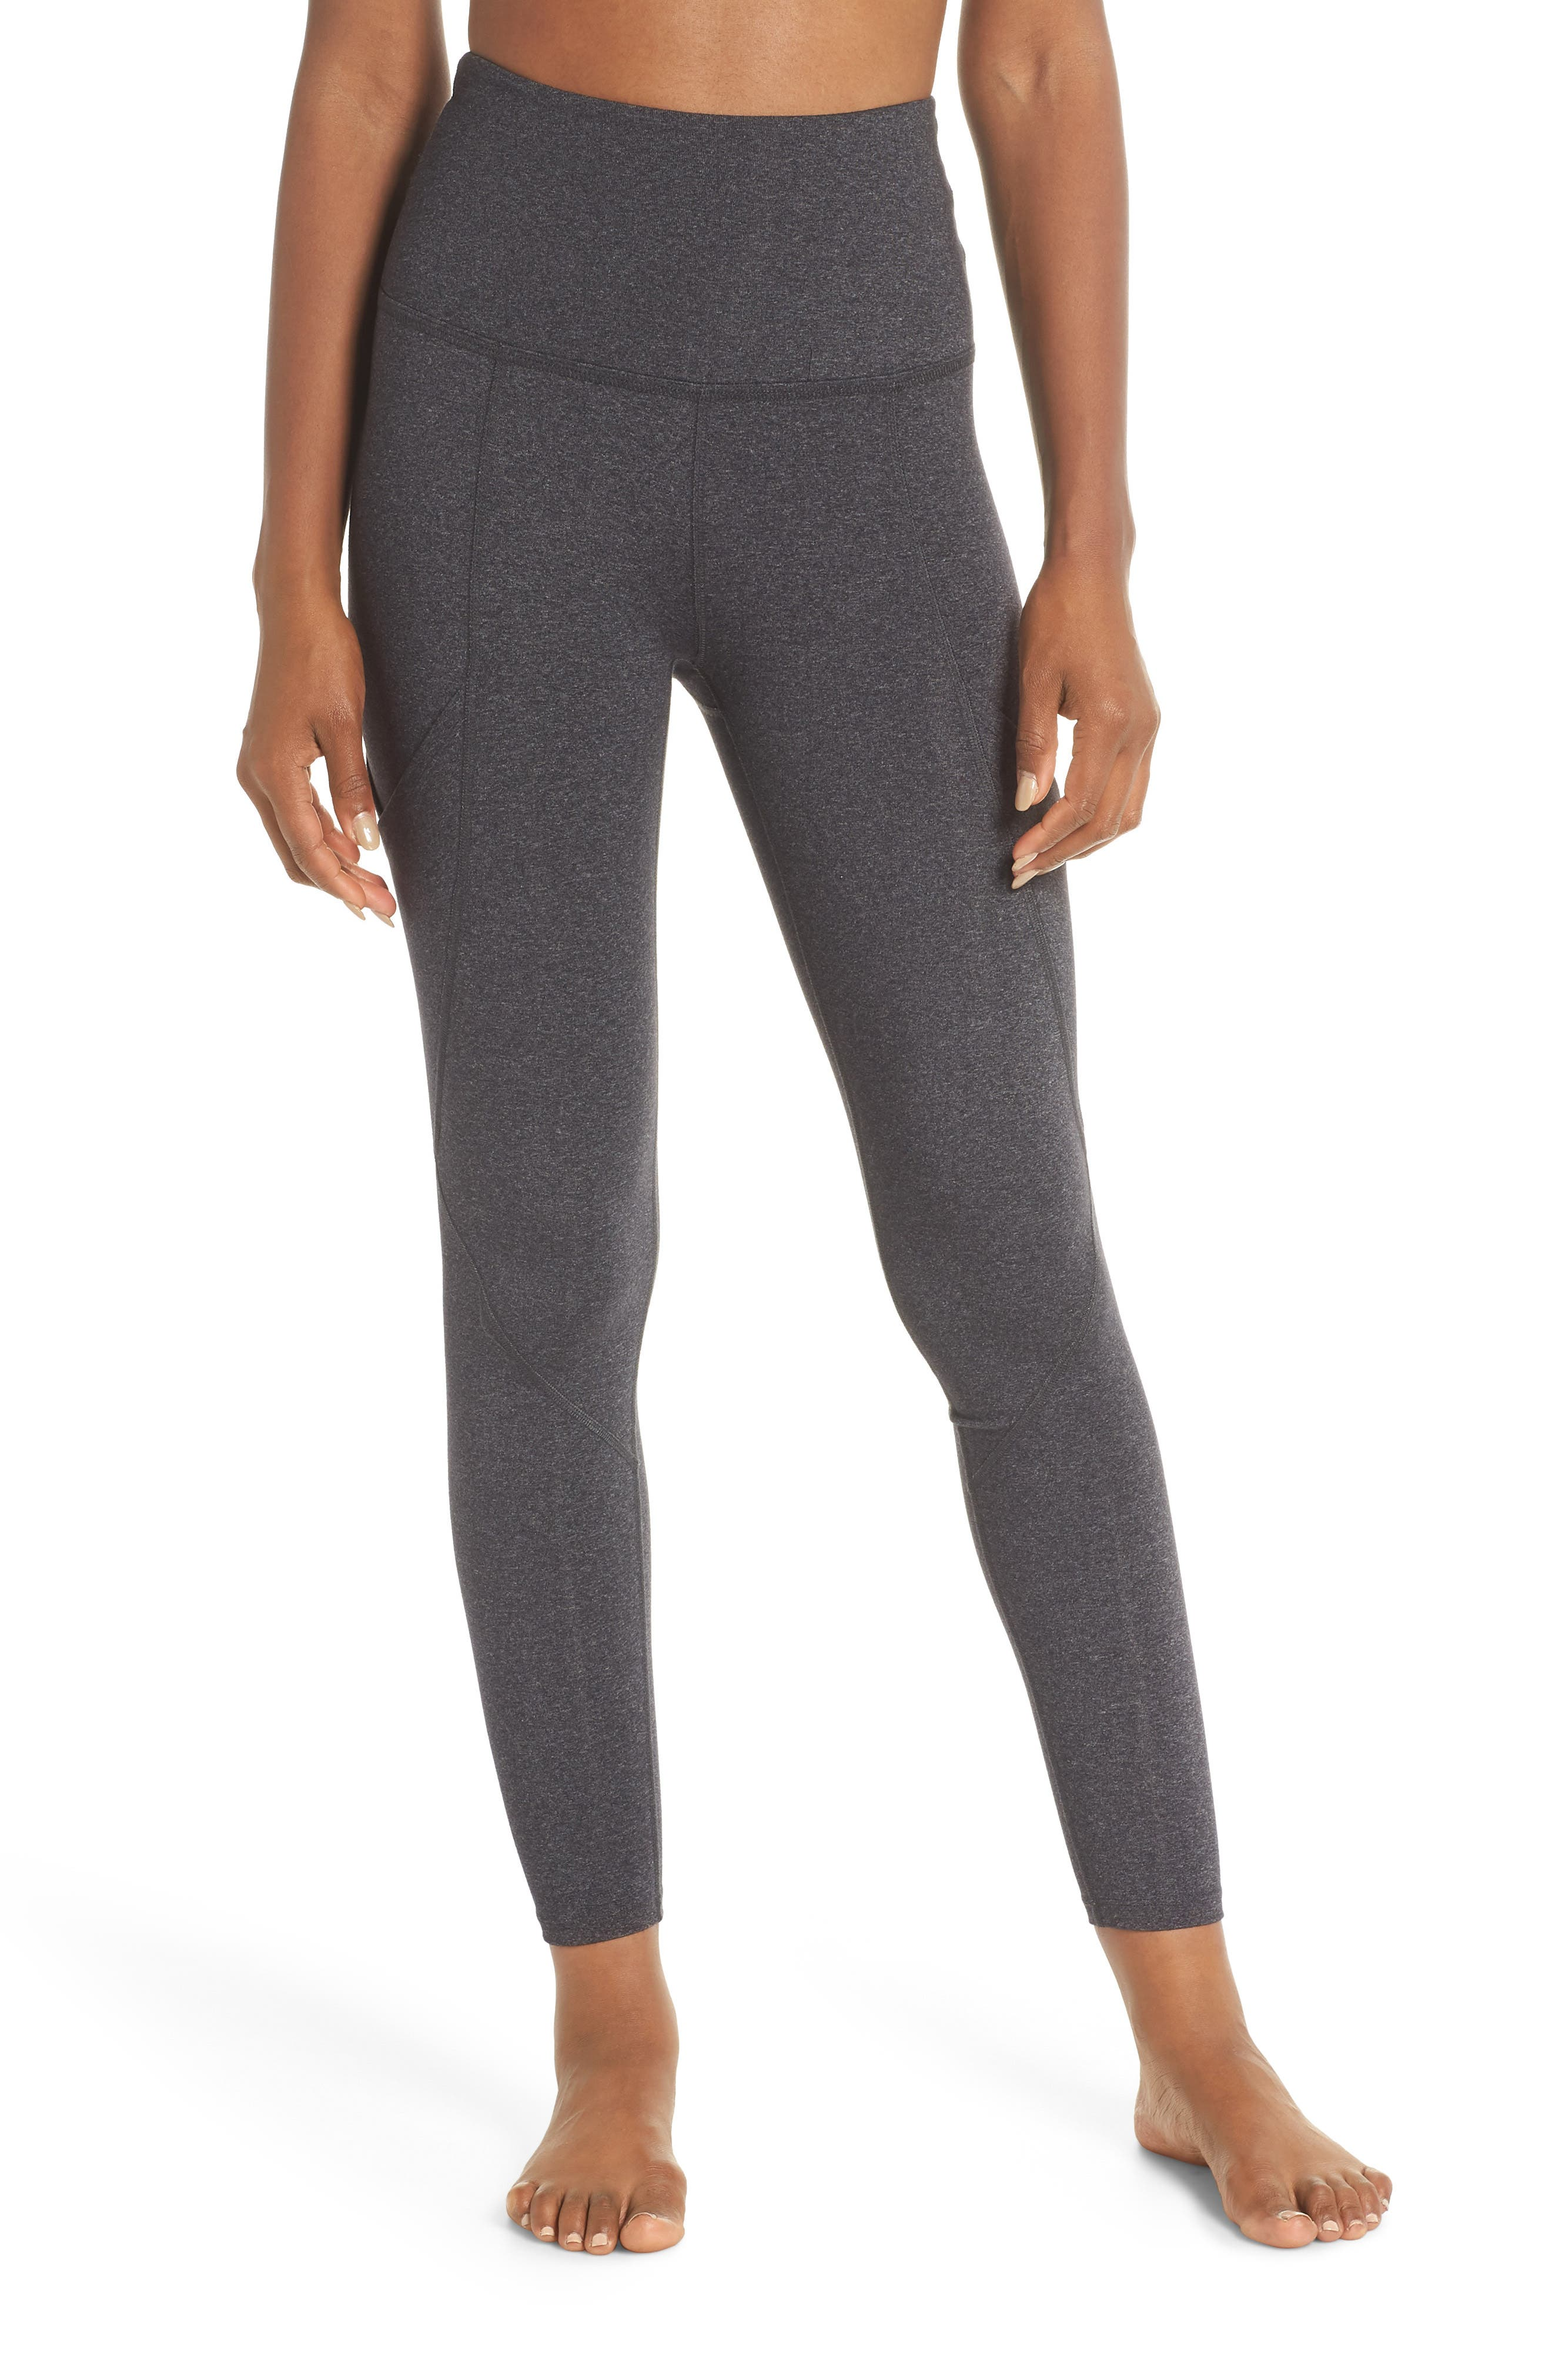 Palomino Midi High Waisted Leggings,                         Main,                         color, 030